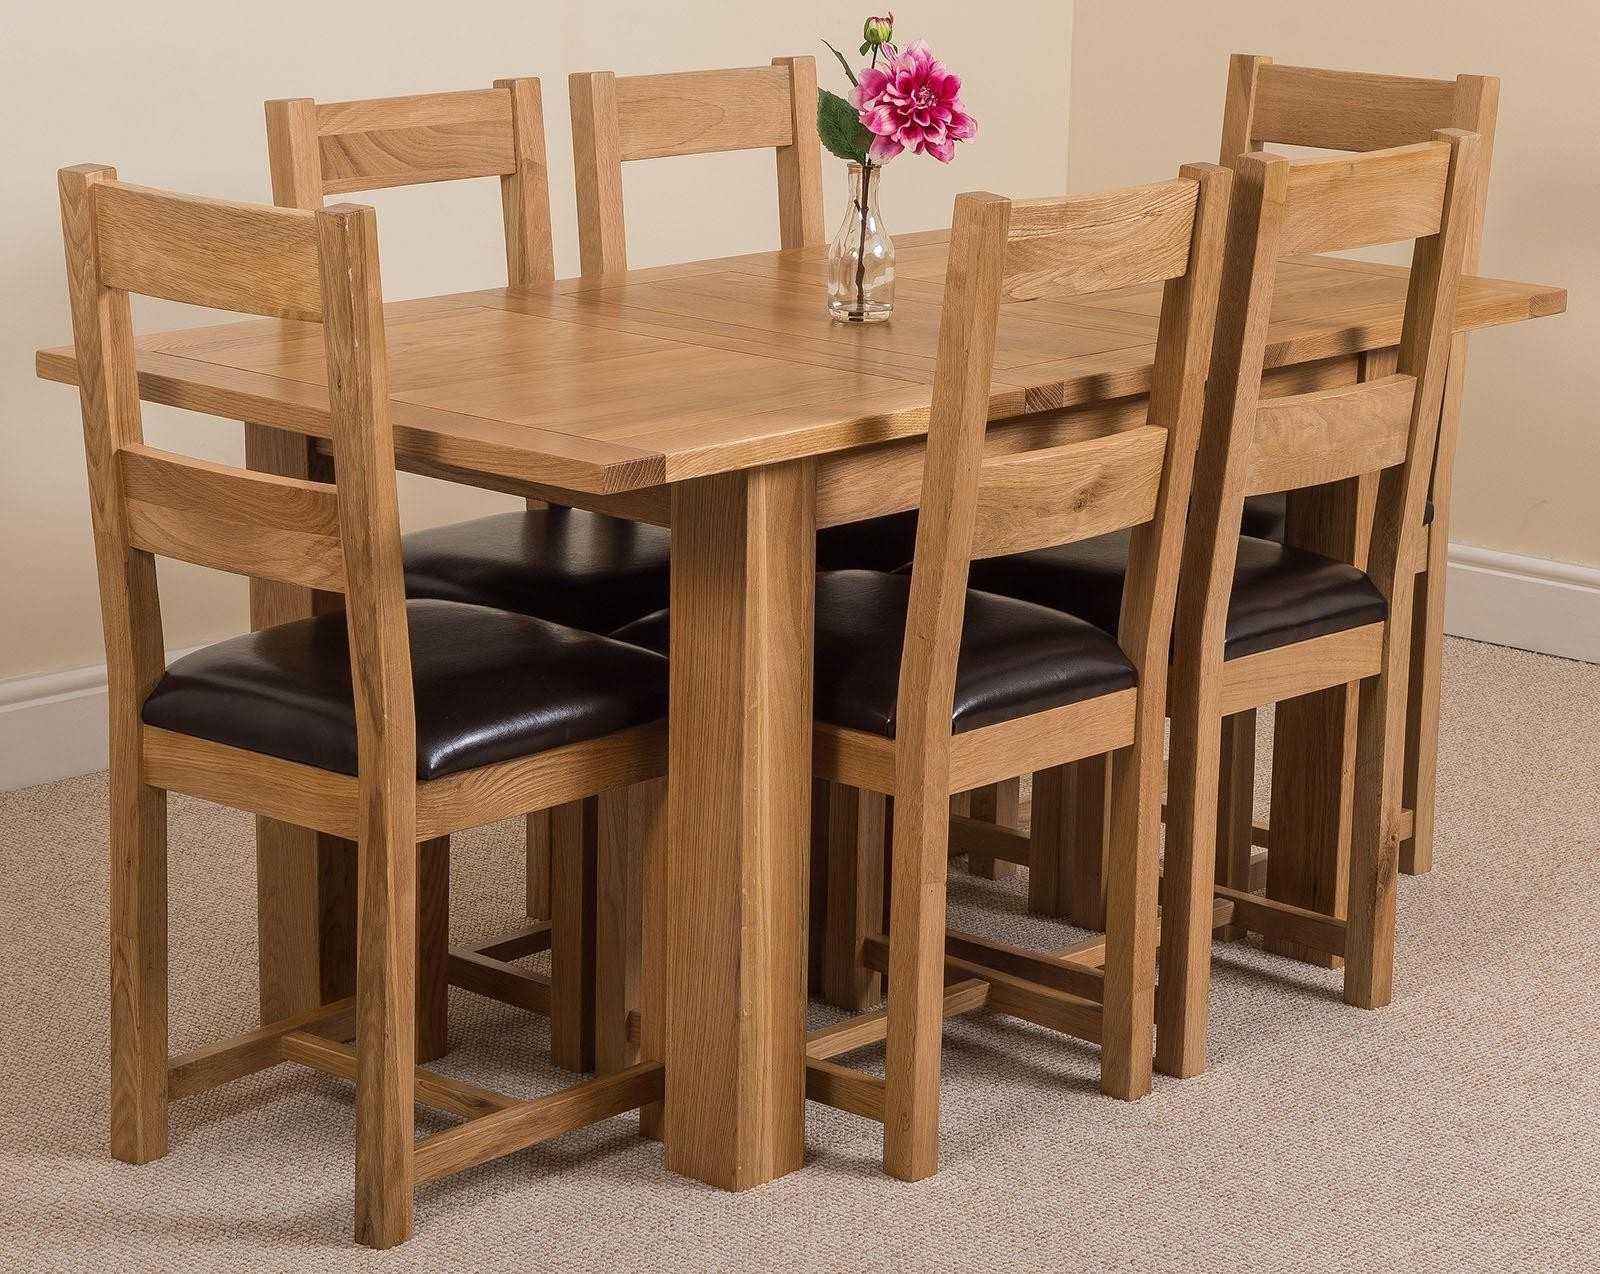 Oak Furniture King Intended For Extending Oak Dining Tables And Chairs (View 16 of 25)